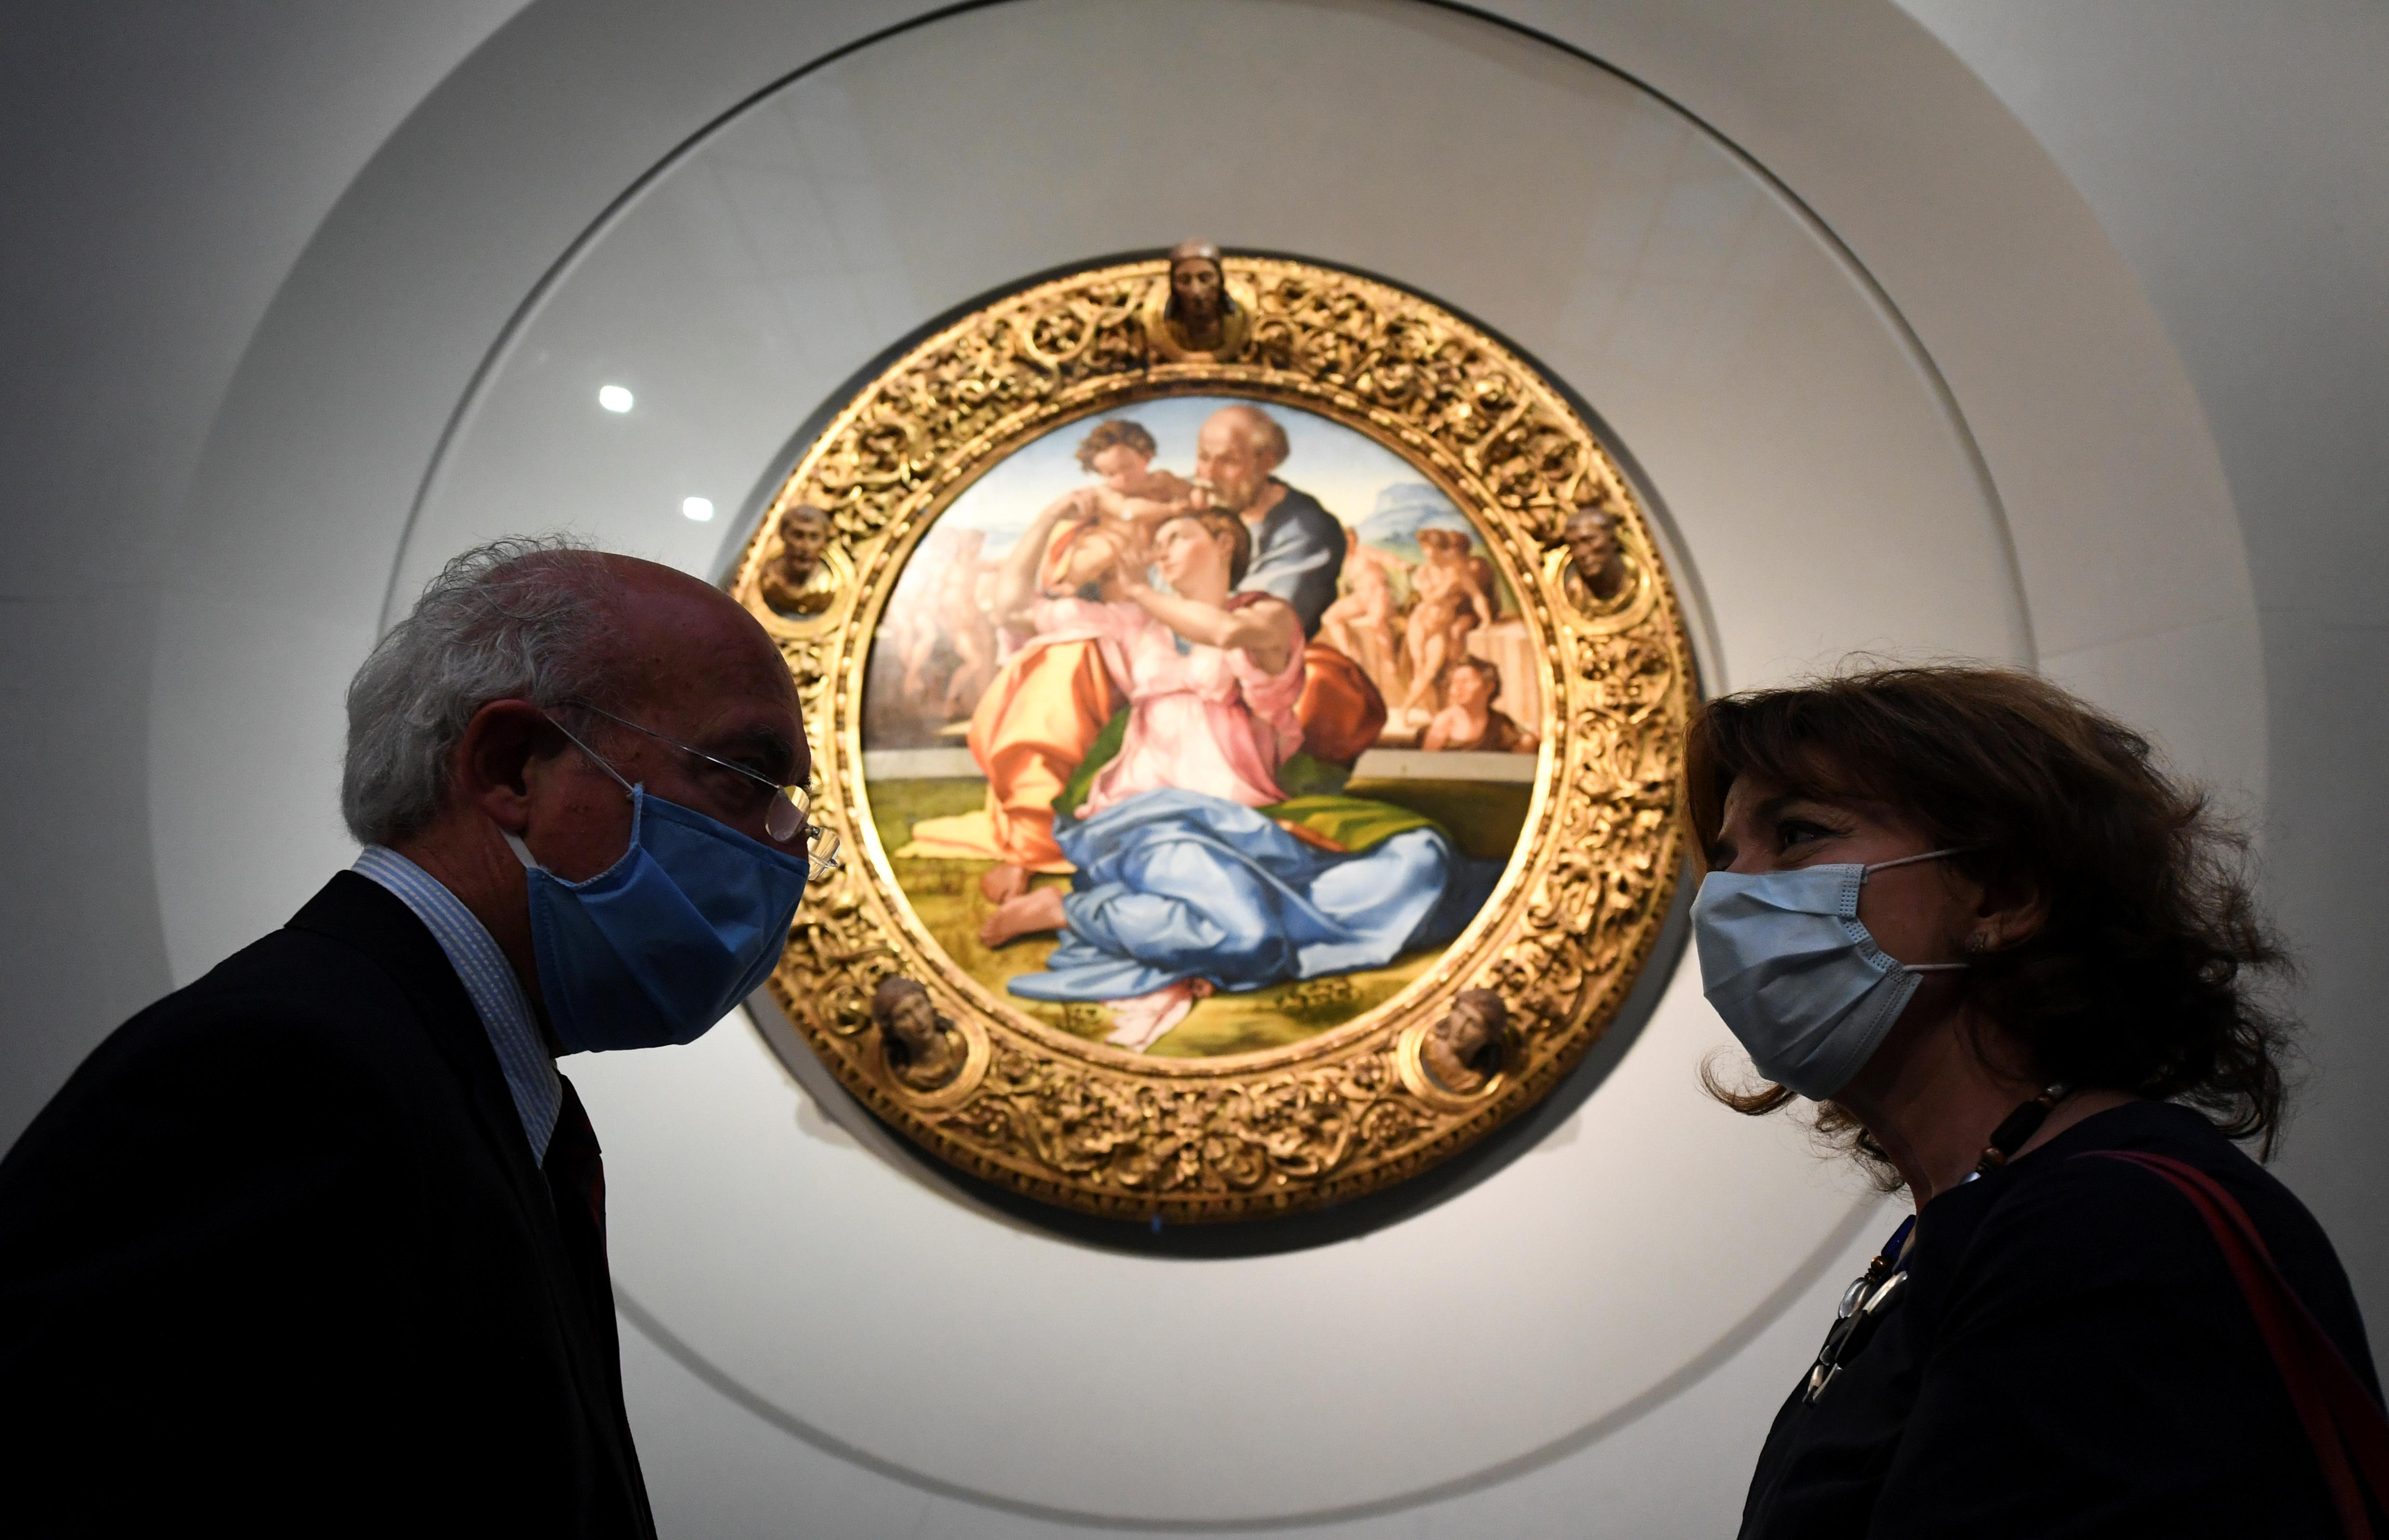 Reopening of the Uffizi Gallery after months of closure during the outbreak of the coronavirus disease (COVID-19) in Florence